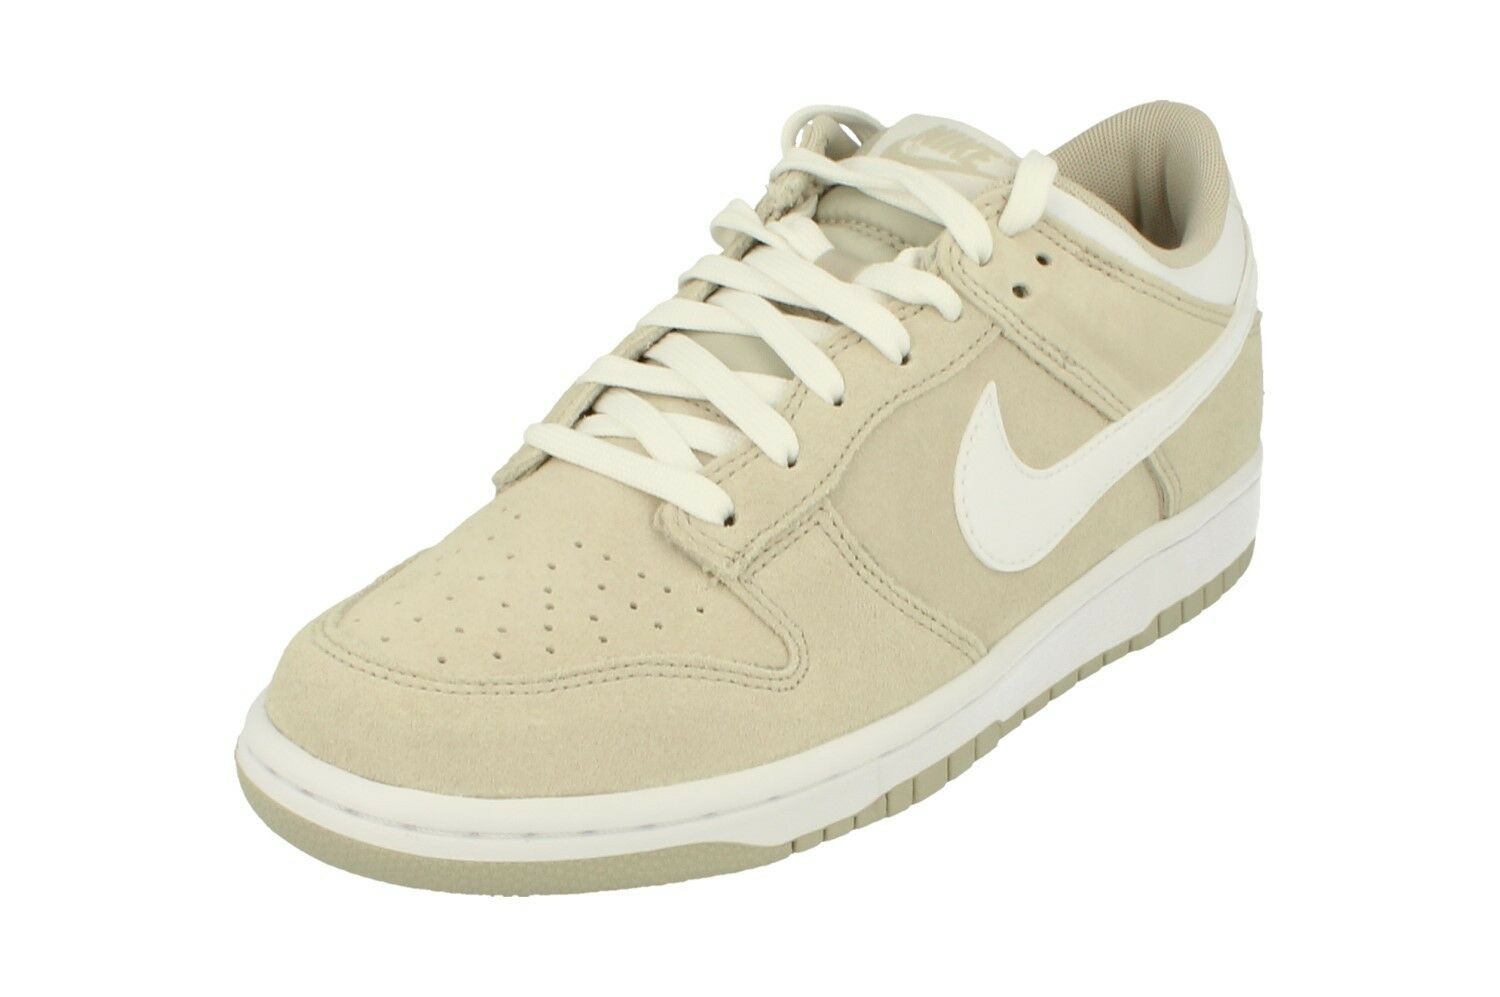 Nike Dunk Low Mens Trainers 904234 Sneakers shoes 002